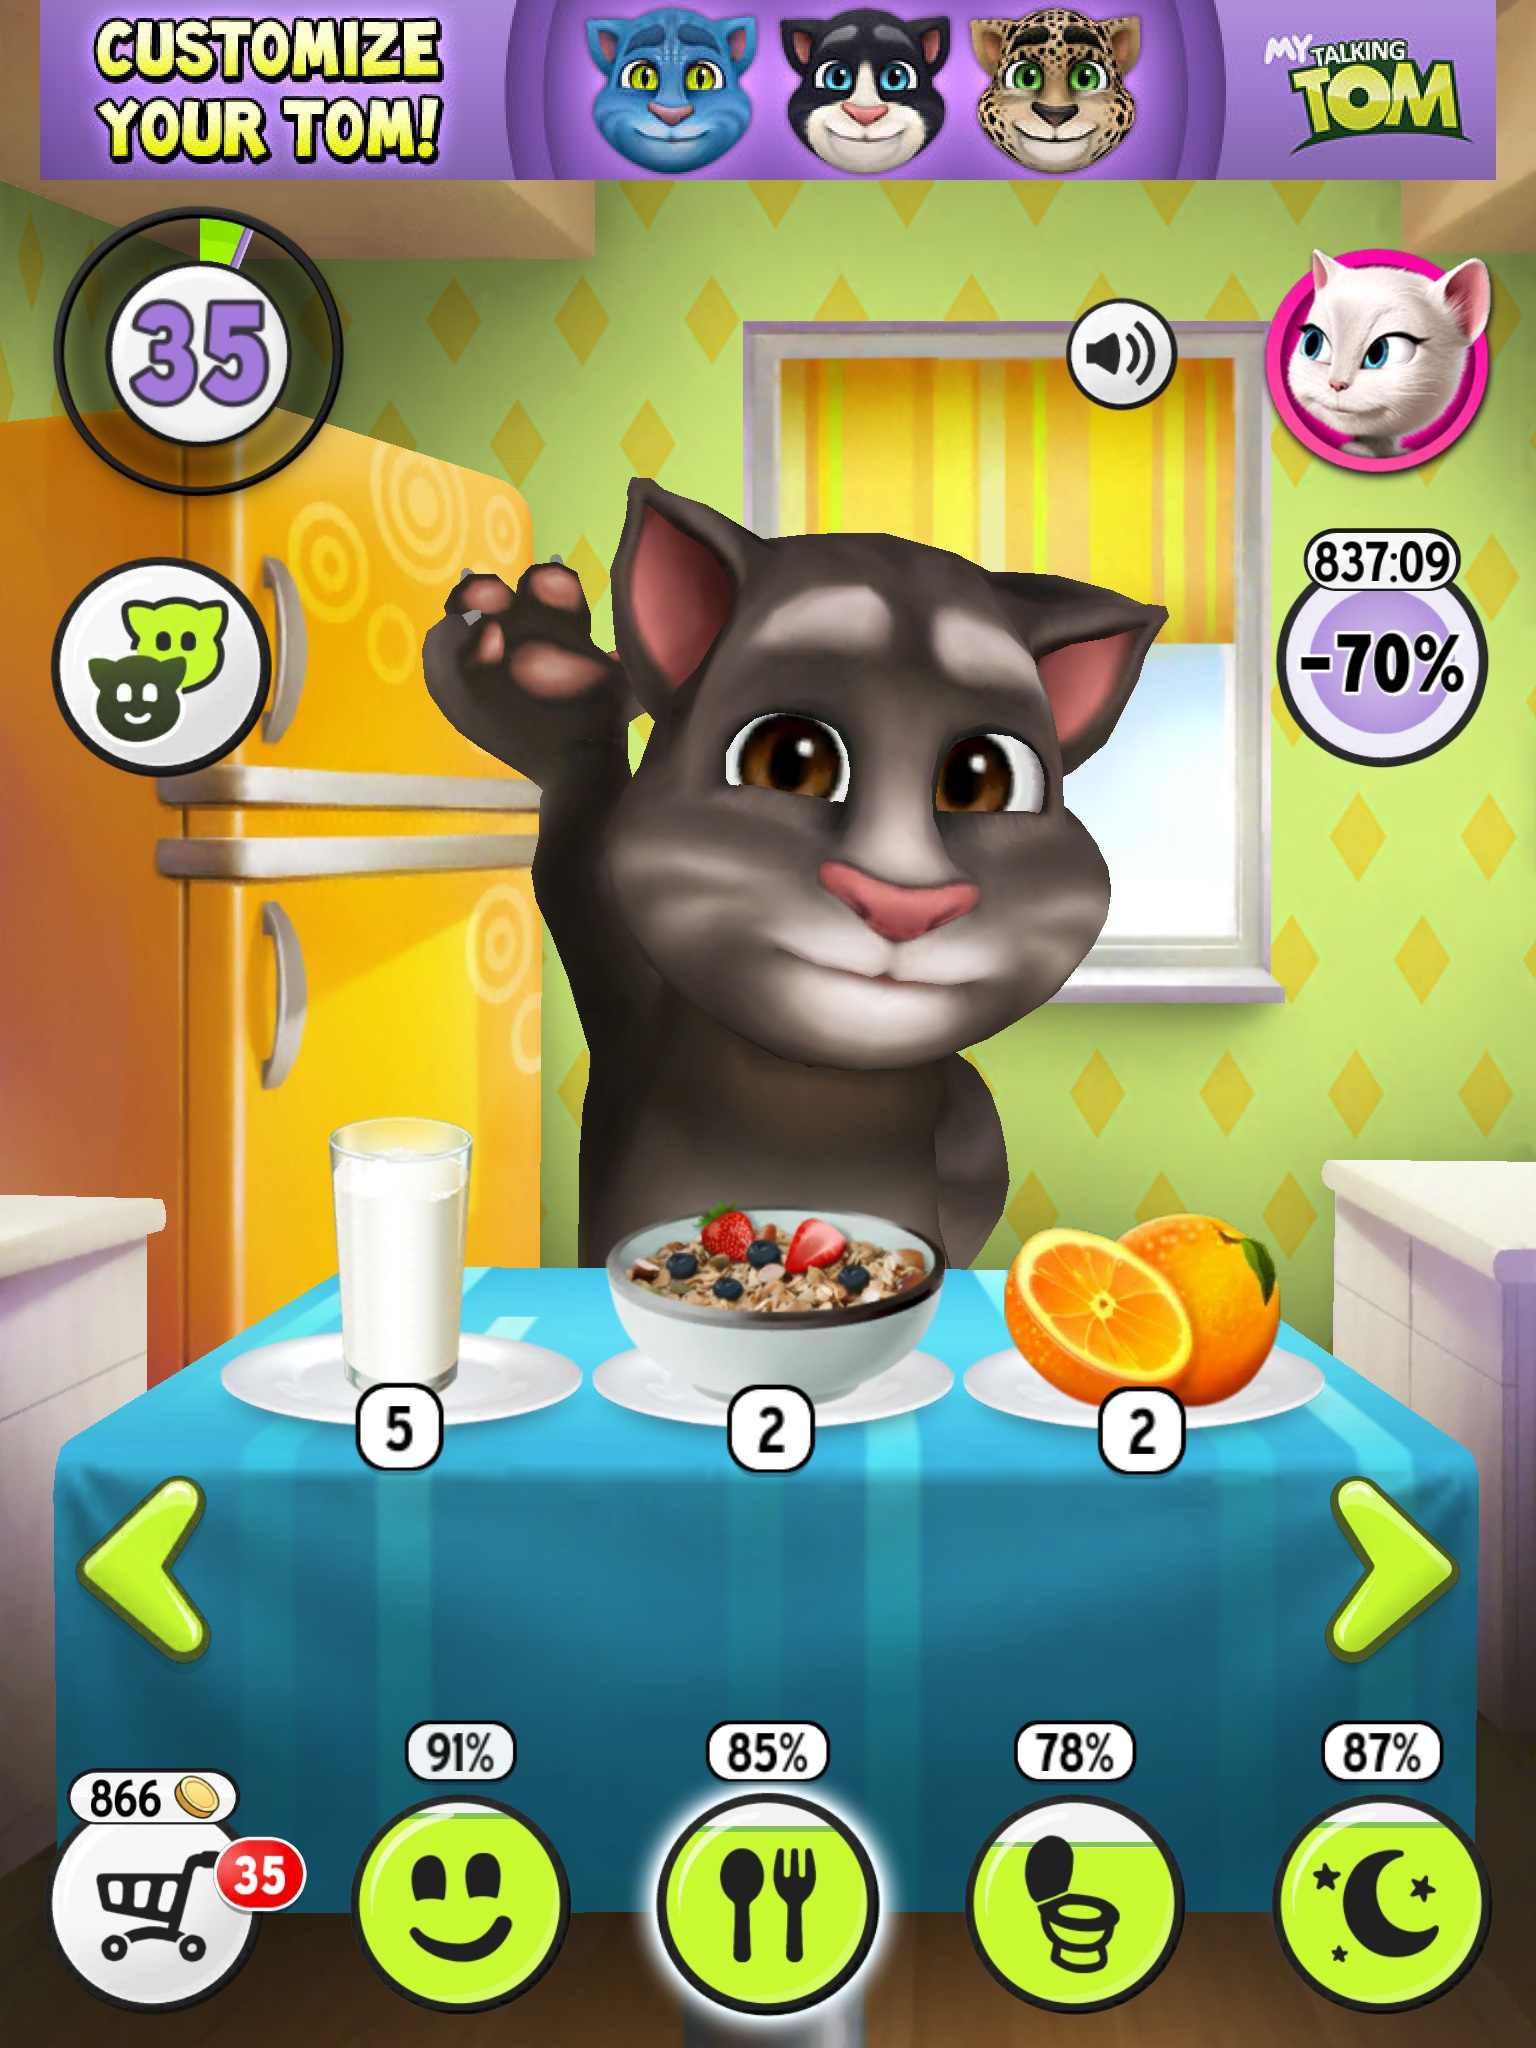 MY TALKING TOM Photos, Images and Wallpapers - MouthShut com